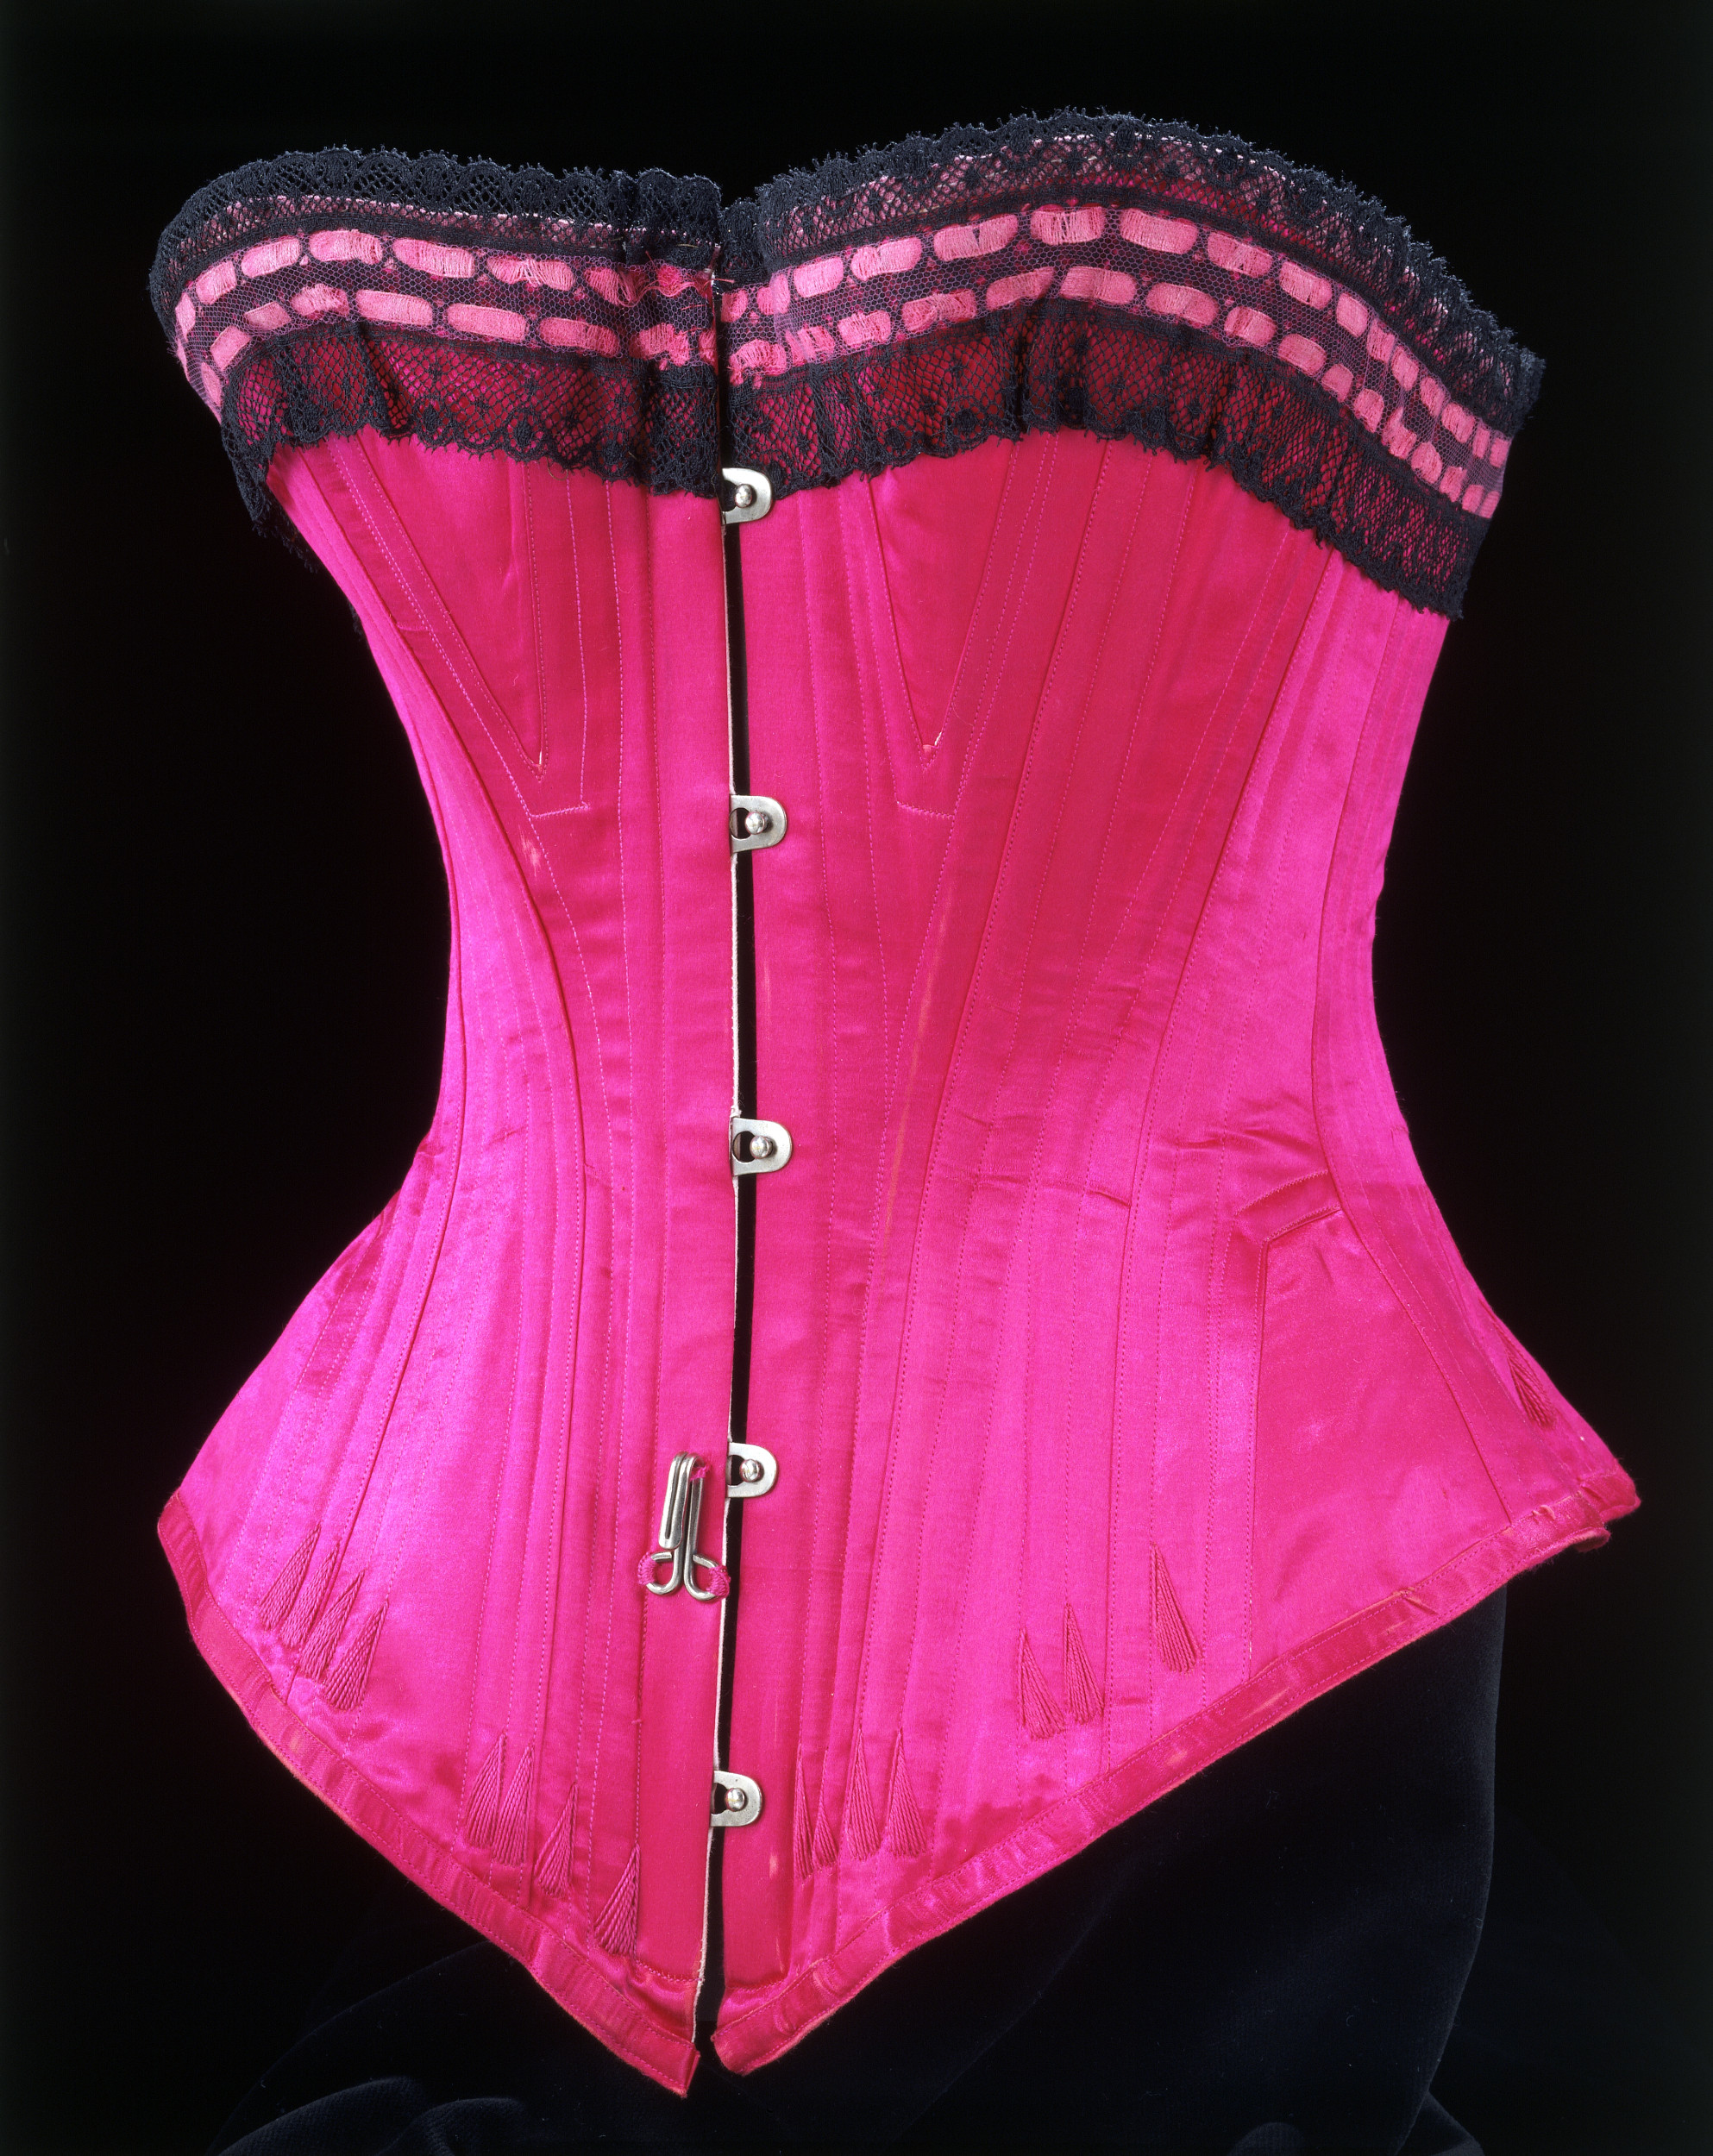 Corset, 1890-1895 (c) Victoria and Albert Museum, London